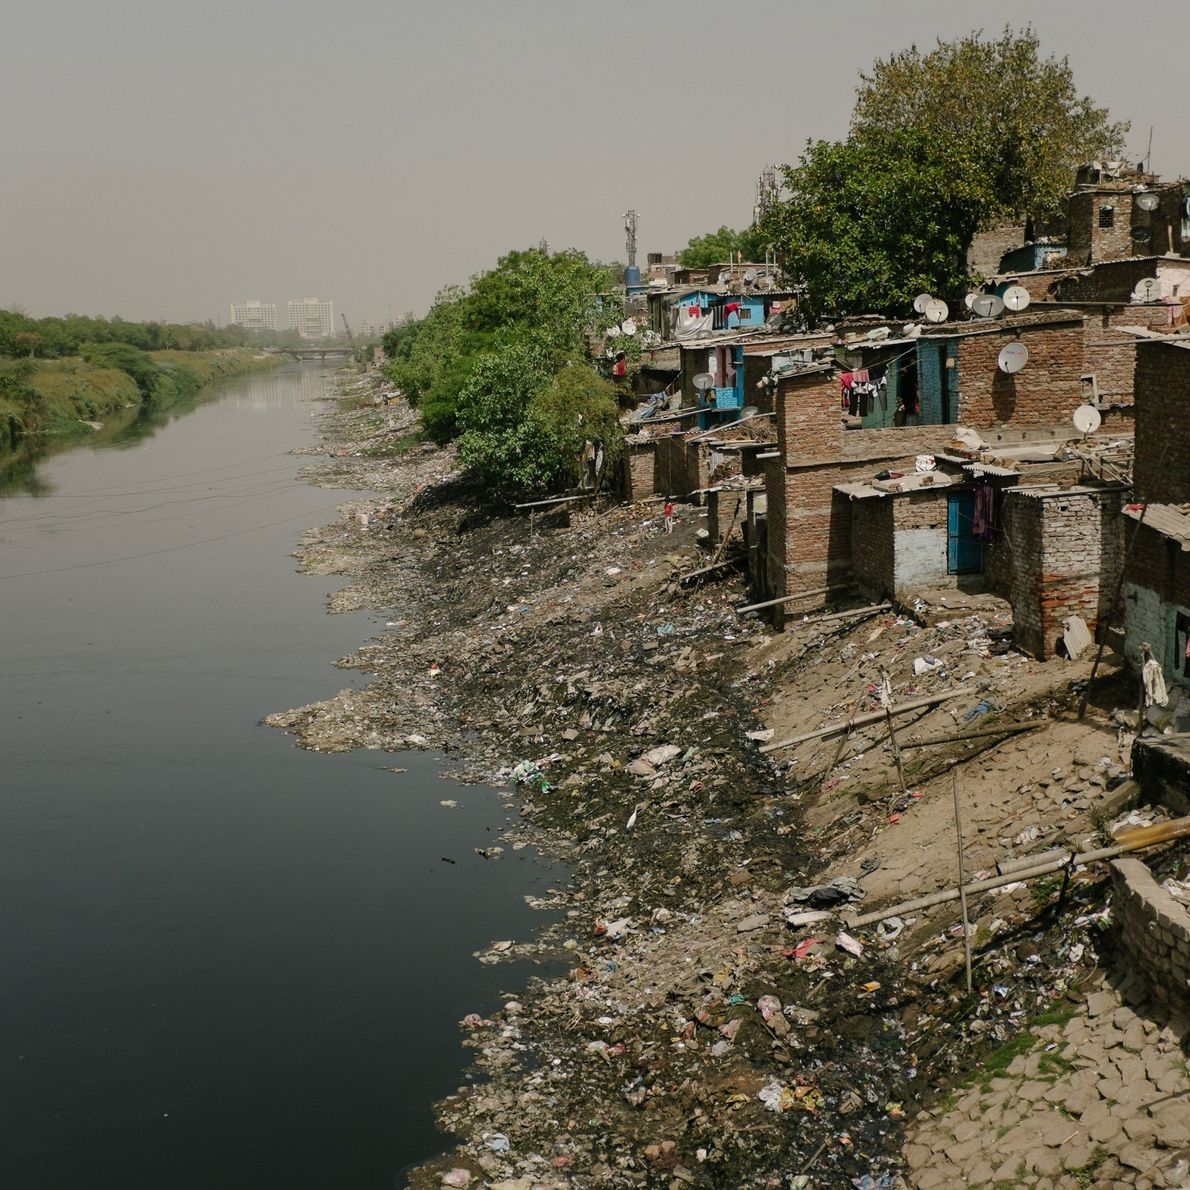 Impoverished people in India often have no housing options other than living next to open sewers, ...